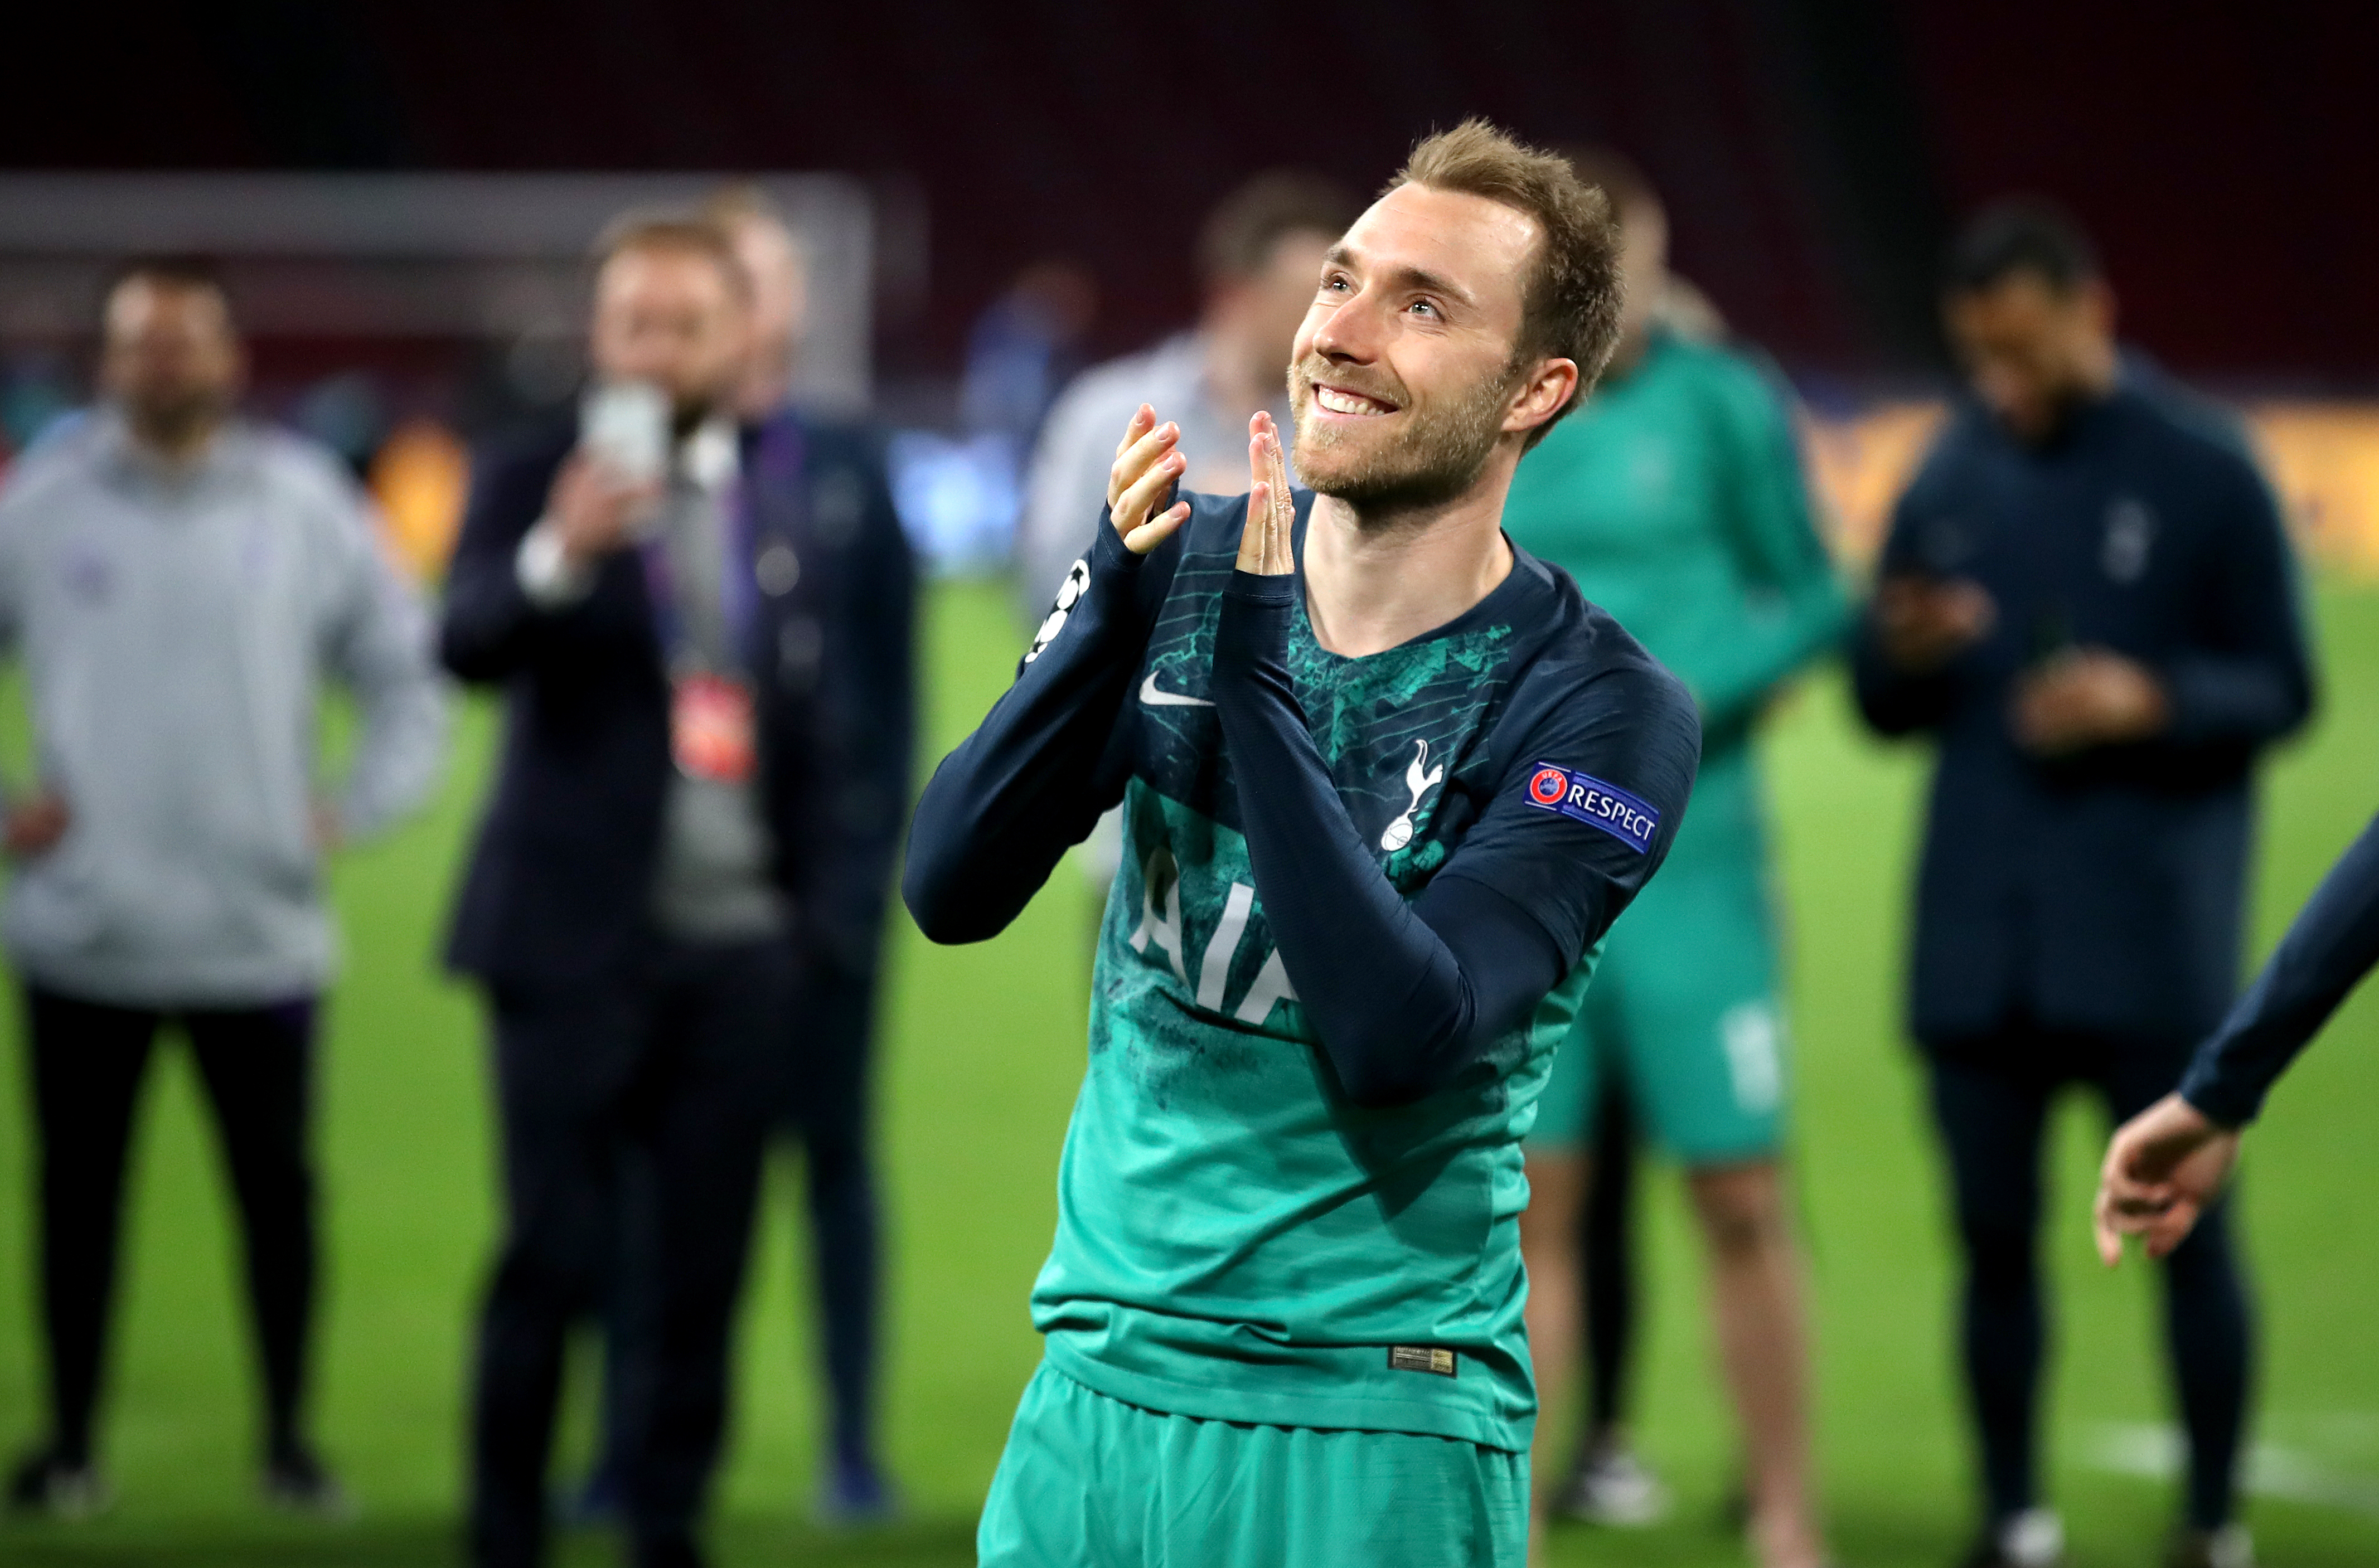 Eriksen revealed he wants to leave Spurs. Image: PA Images